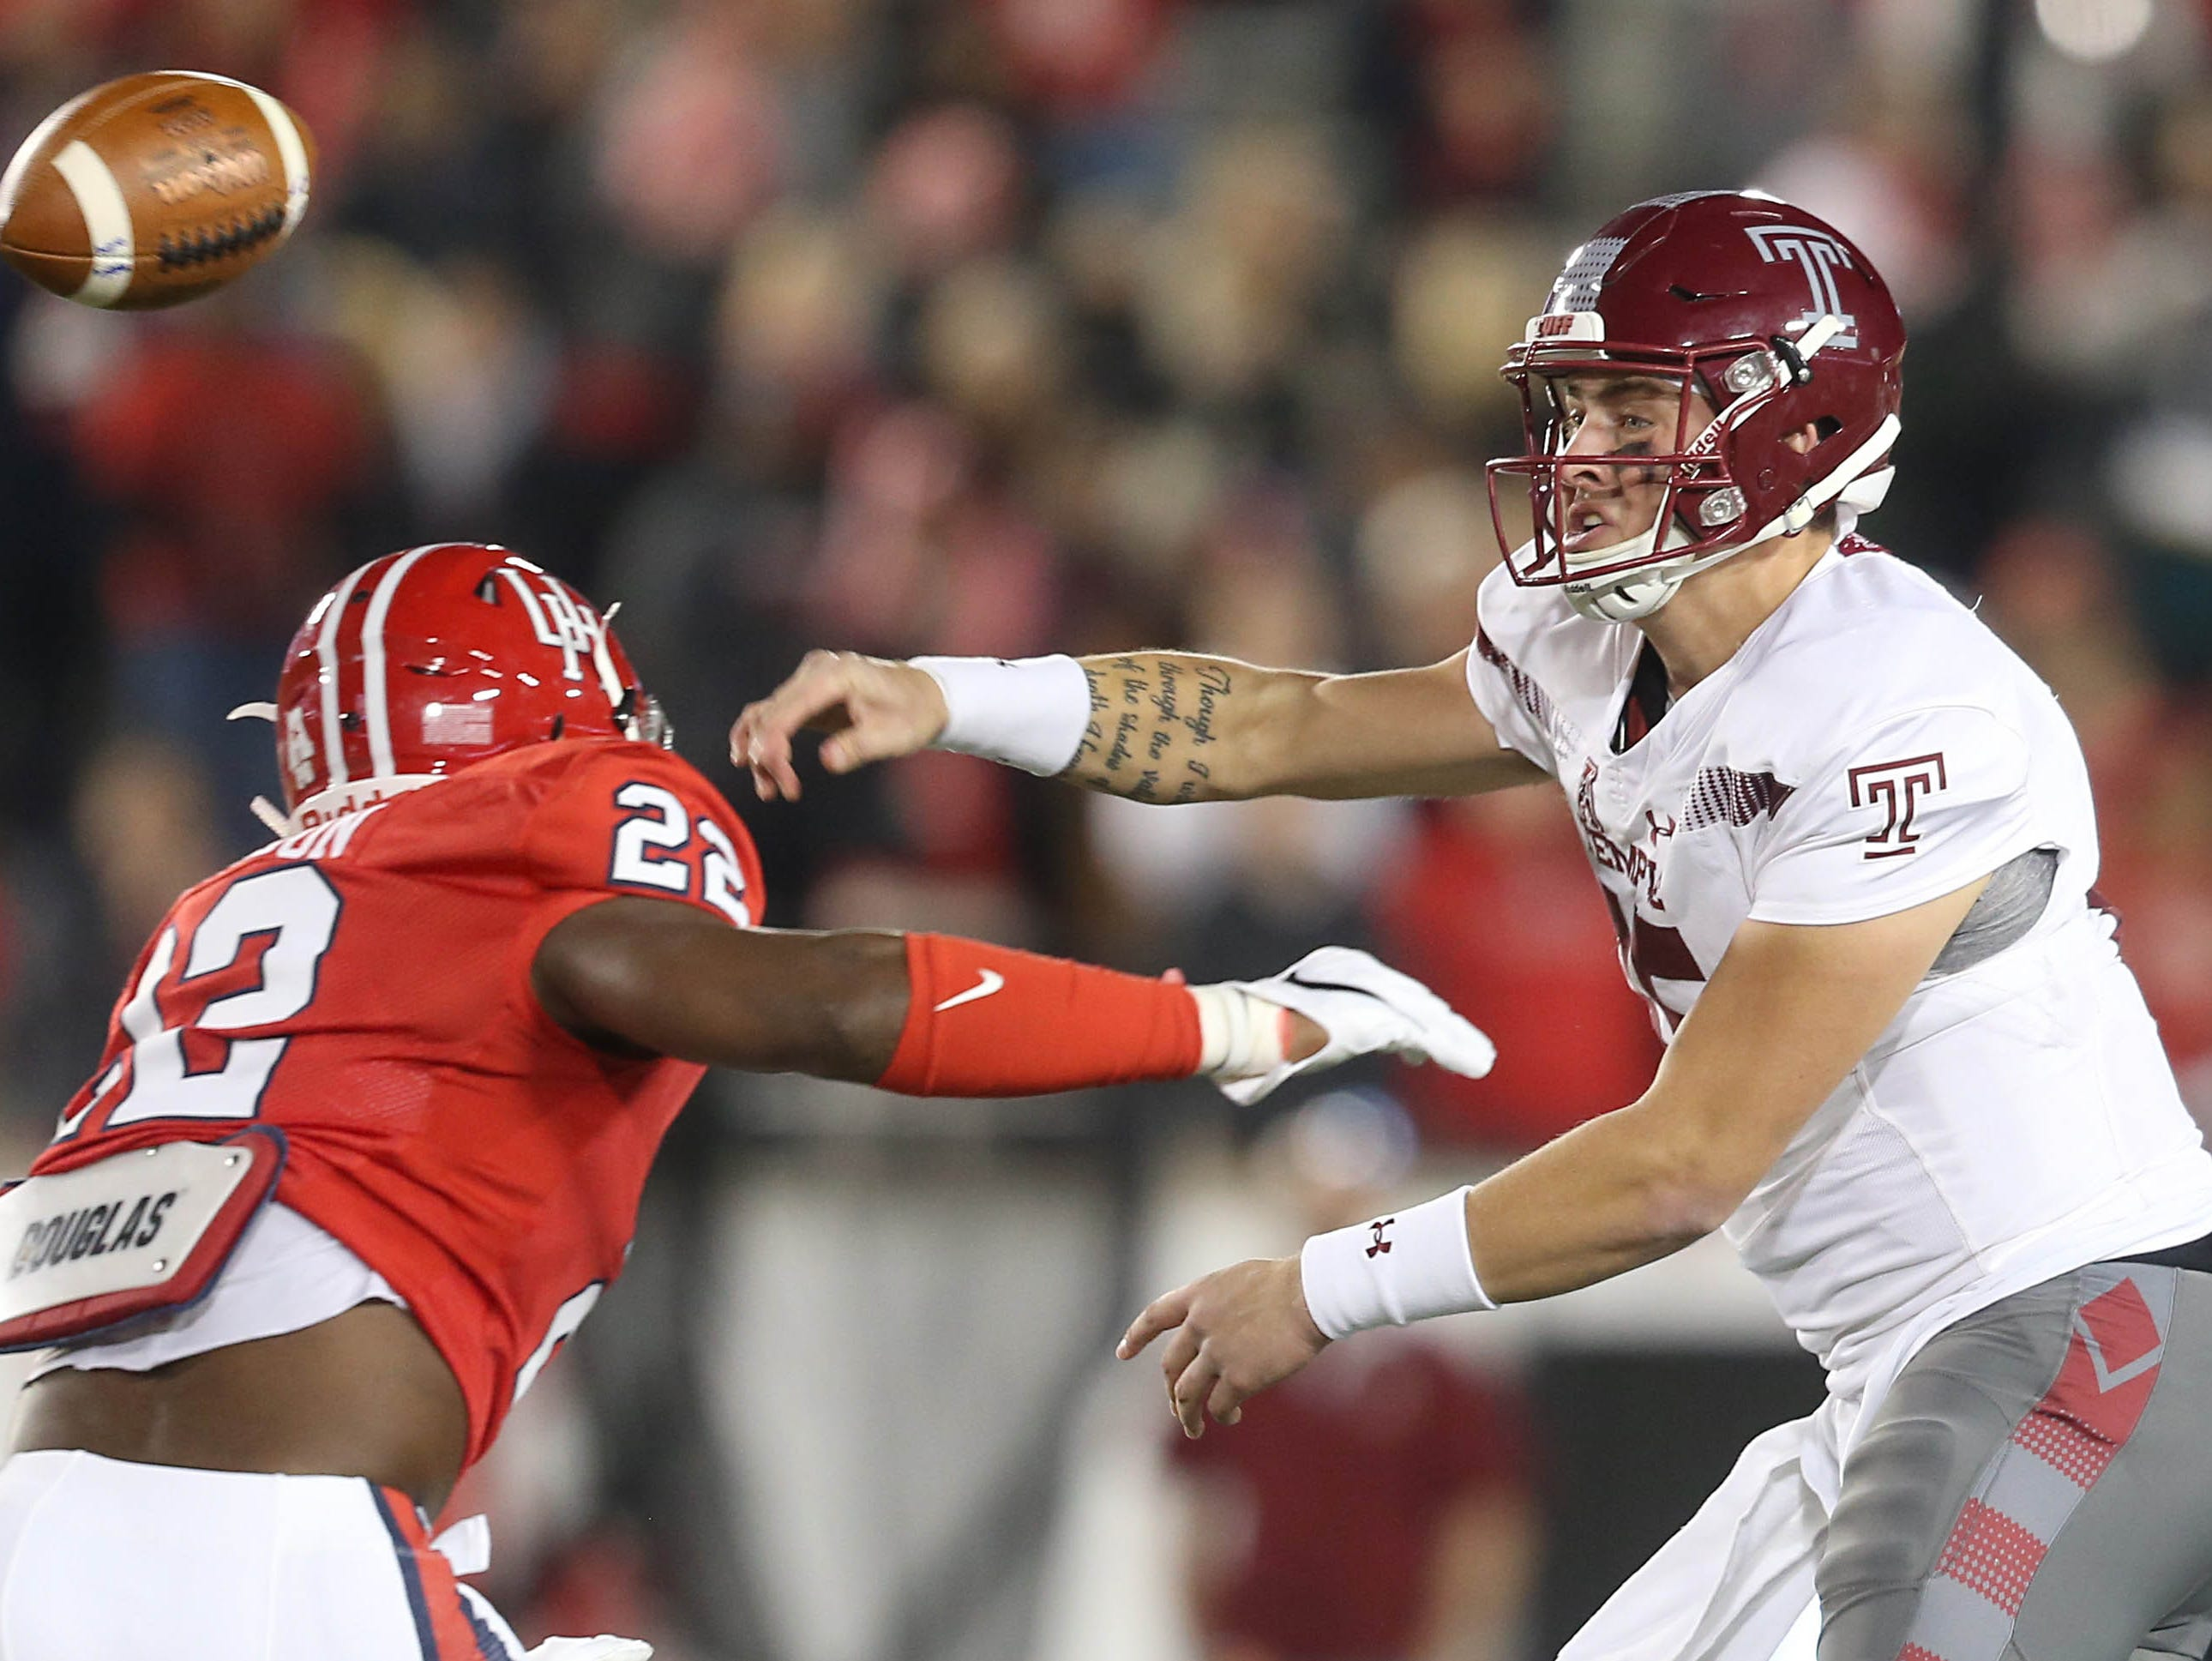 Temple Owls quarterback Anthony Russo (15) passes against Houston Cougars linebacker Austin Robinson (22) in the first half at TDECU Stadium.